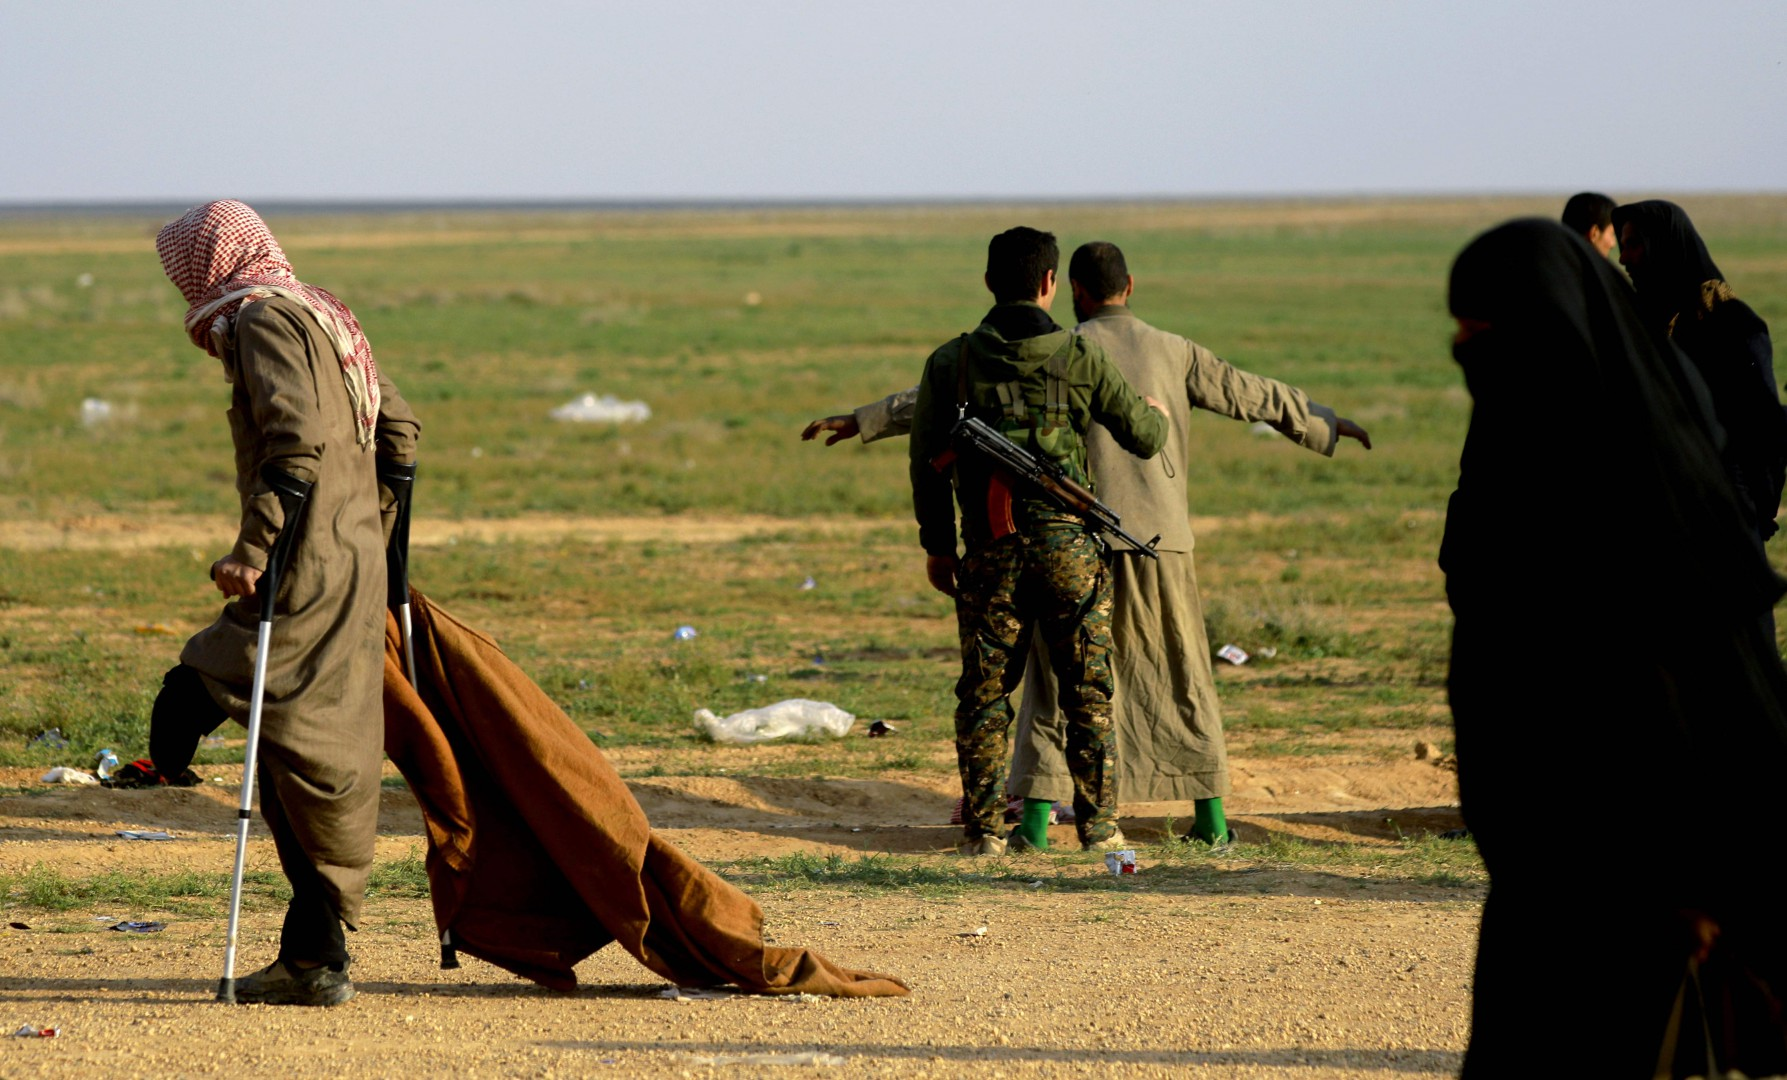 "a man suspected of being an Islamic State (IS) fighter is searched by a member of the Kurdish-led Syrian Democratic Forces (SDF) after leaving the IS group's last holdout of Baghouz, in Syria's northern Deir Ezzor province on February 22, 2019. - US-backed fighters trucked out civilians from the last speck of the Islamic State group's dying ""caliphate"" in Syria on February 22, eager to press on with the battle to crush the jihadists. More than four years after IS overran large parts of Syria and neighbouring Iraq, and declared a ""caliphate"", they have lost all of it but a tiny patch in the village of Baghouz near the Iraqi border. (Photo by Delil SOULEIMAN / AFP)"